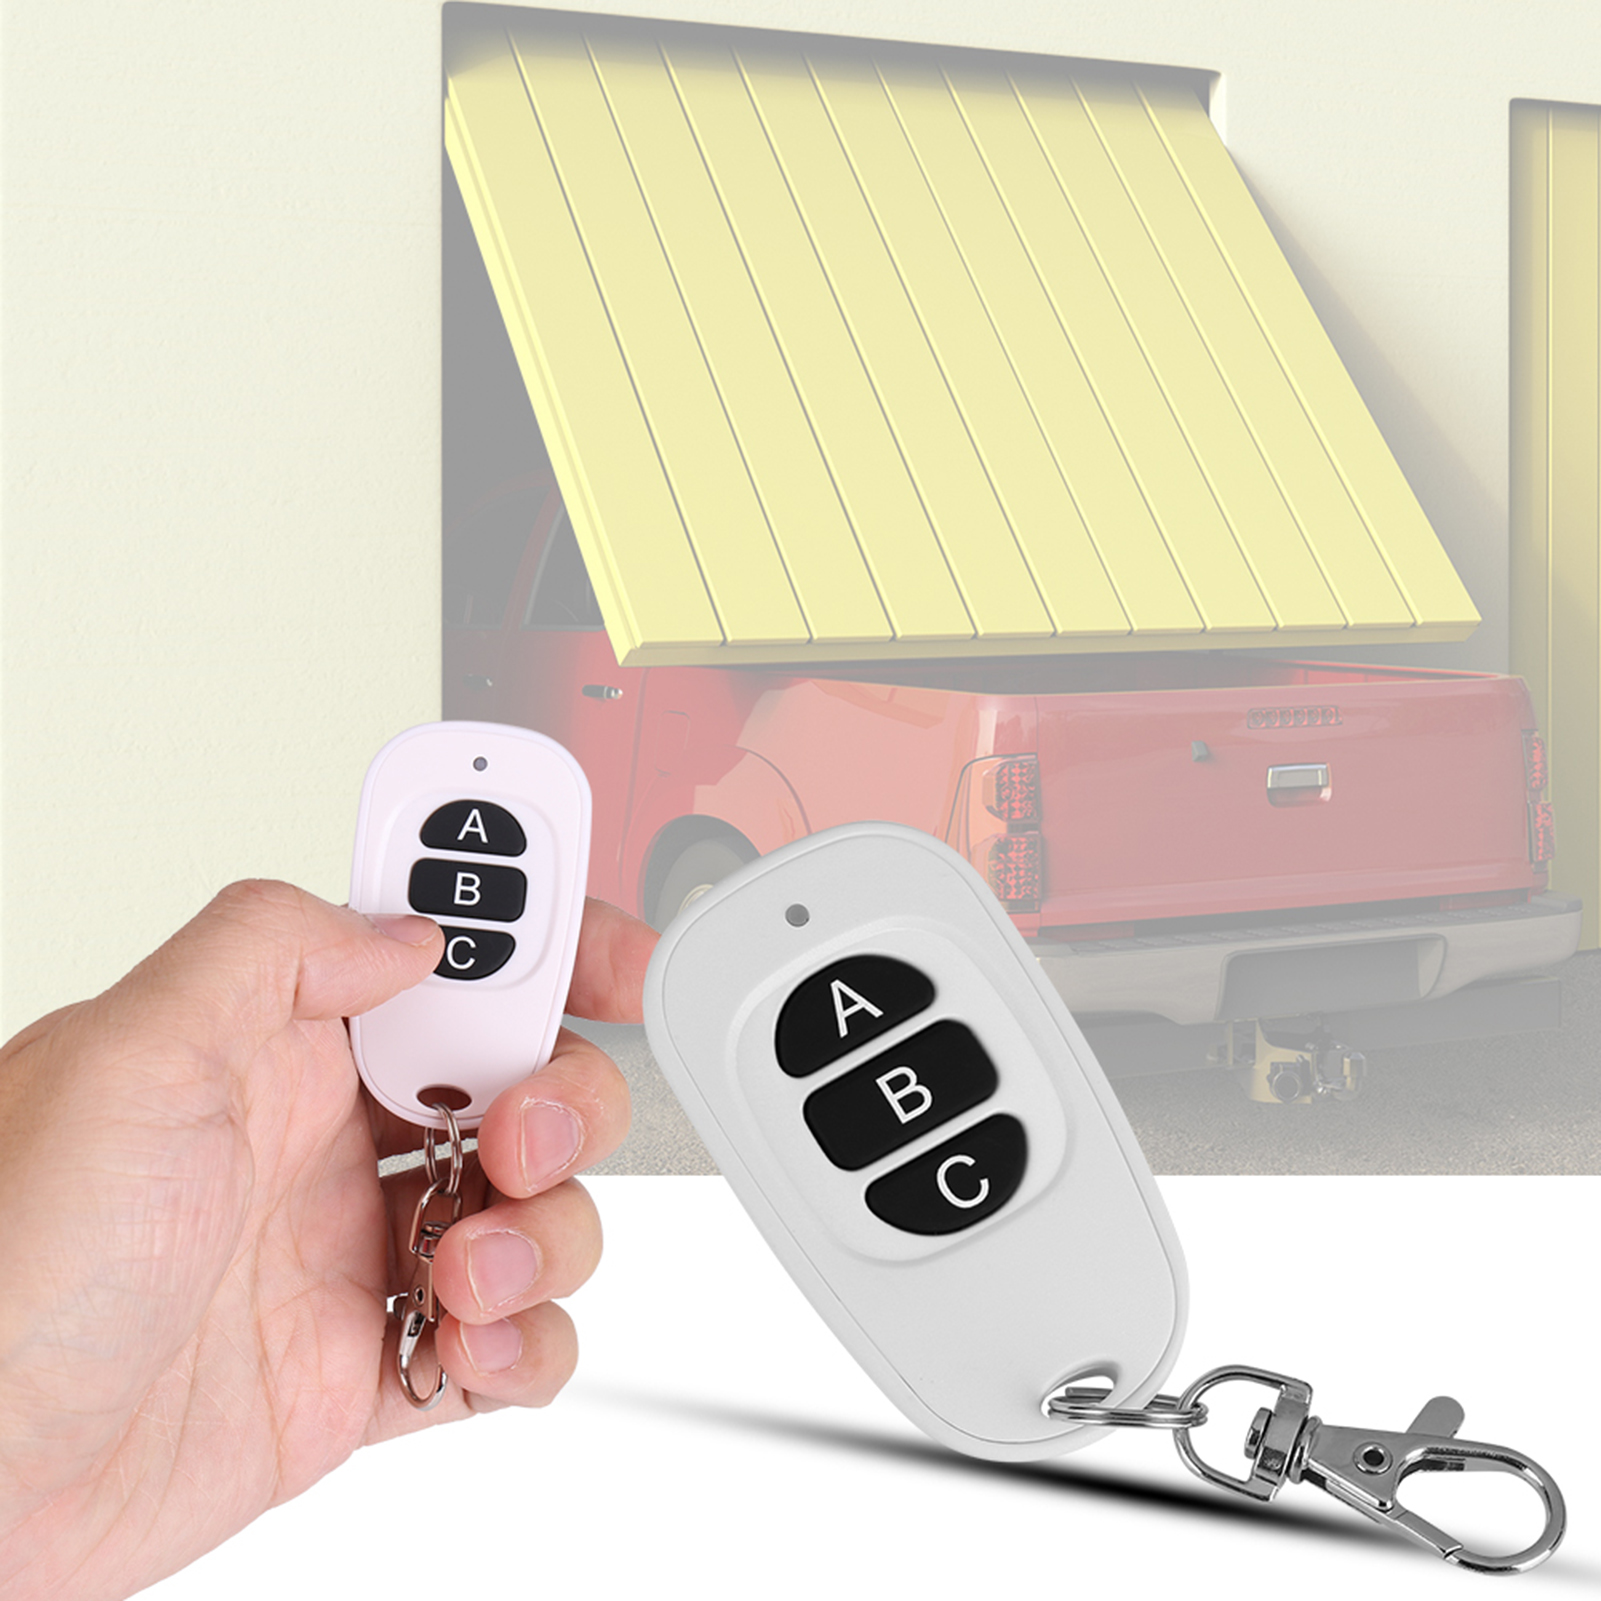 433MHz-EV1527-RF-Wireless-Transmitter-Garage-Door-1-4-Channel-Key-Remote-Control miniature 37